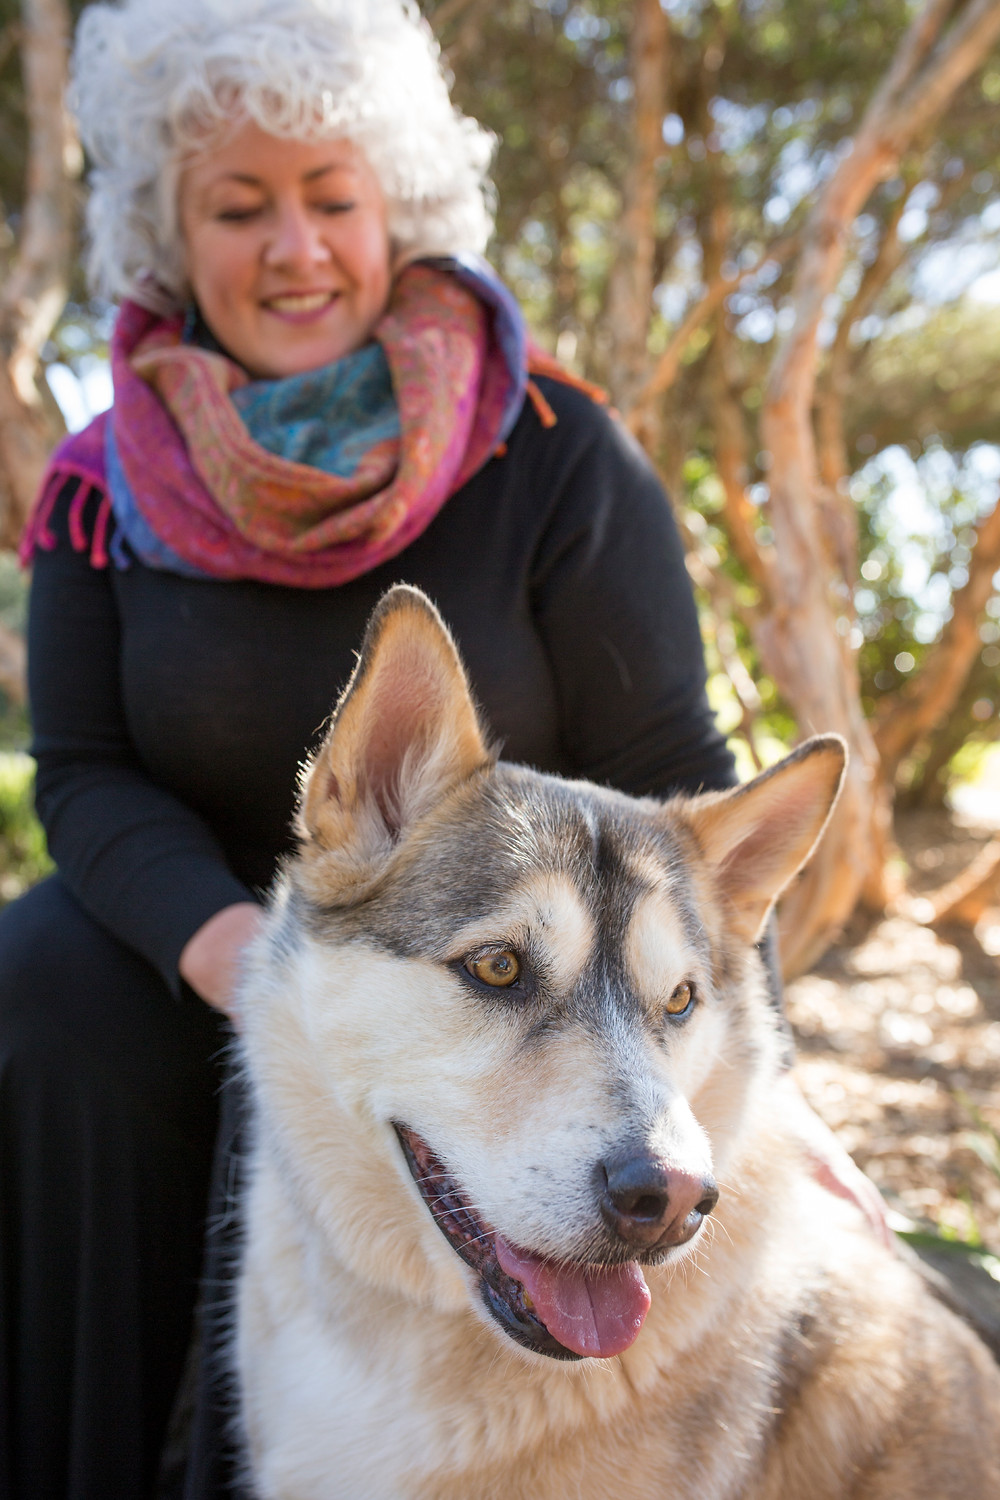 A picture of Dr Annetta Mallon and her dog Cully sitting outside under a tree. Annetta is a woman with white curly hair, a colourful scarf around her neck and a big smile. Cully is an incredibly handsome Malamute X Shepherd dog. Both look very happy.